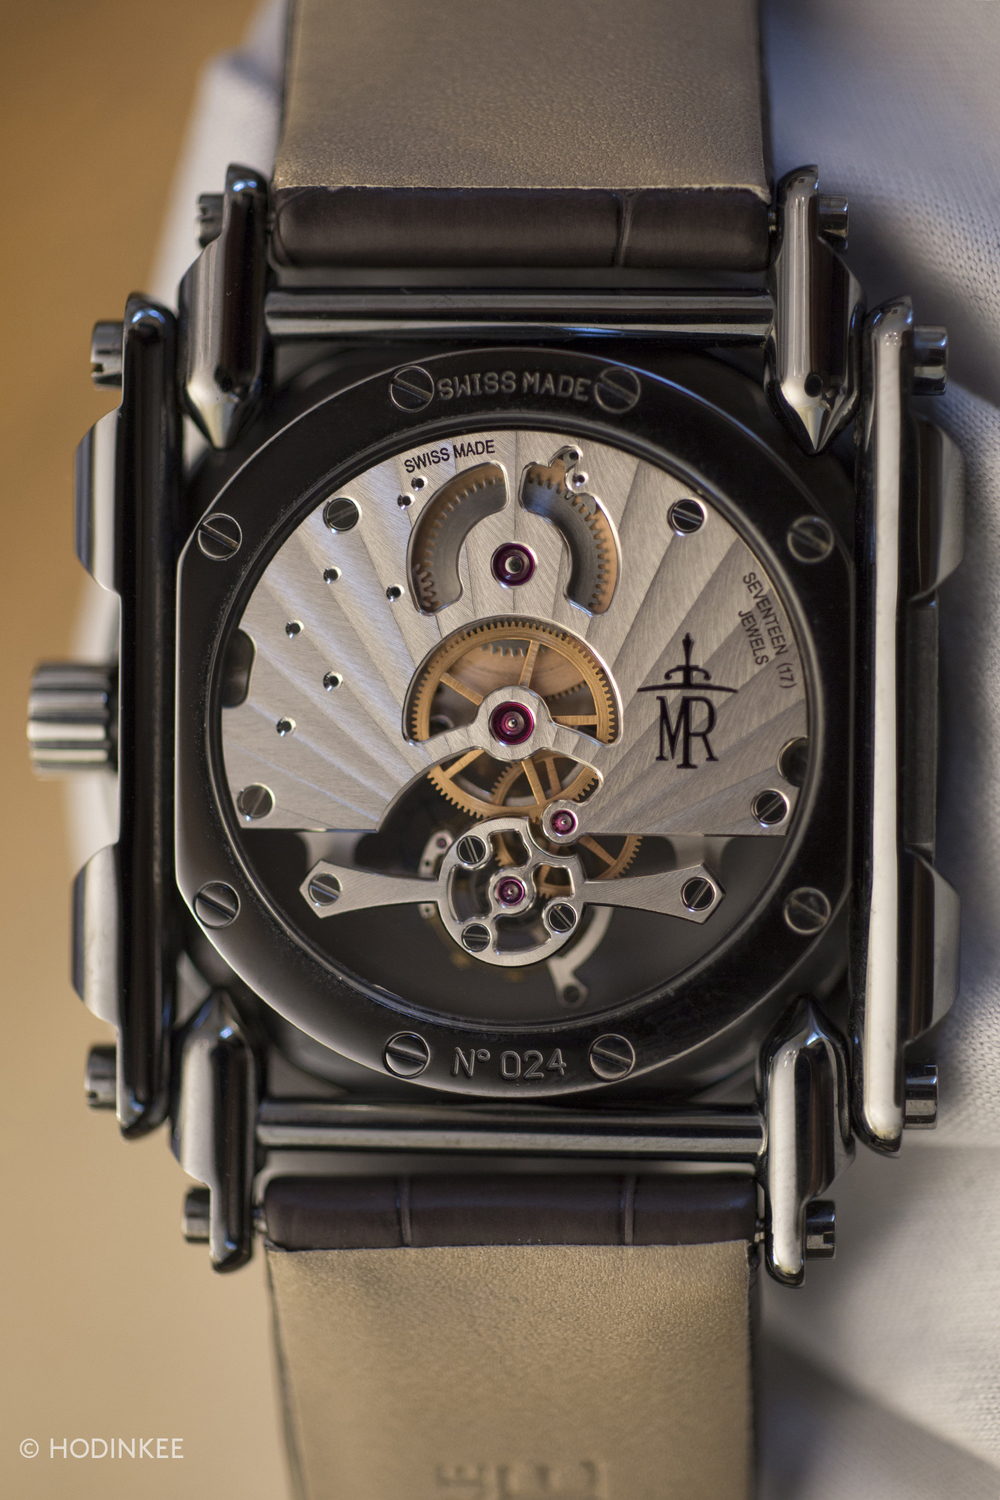 A single barrel within Caliber MR02 offers 108 hours (about 4.5 days)of power reserve when the watch is fullywound.